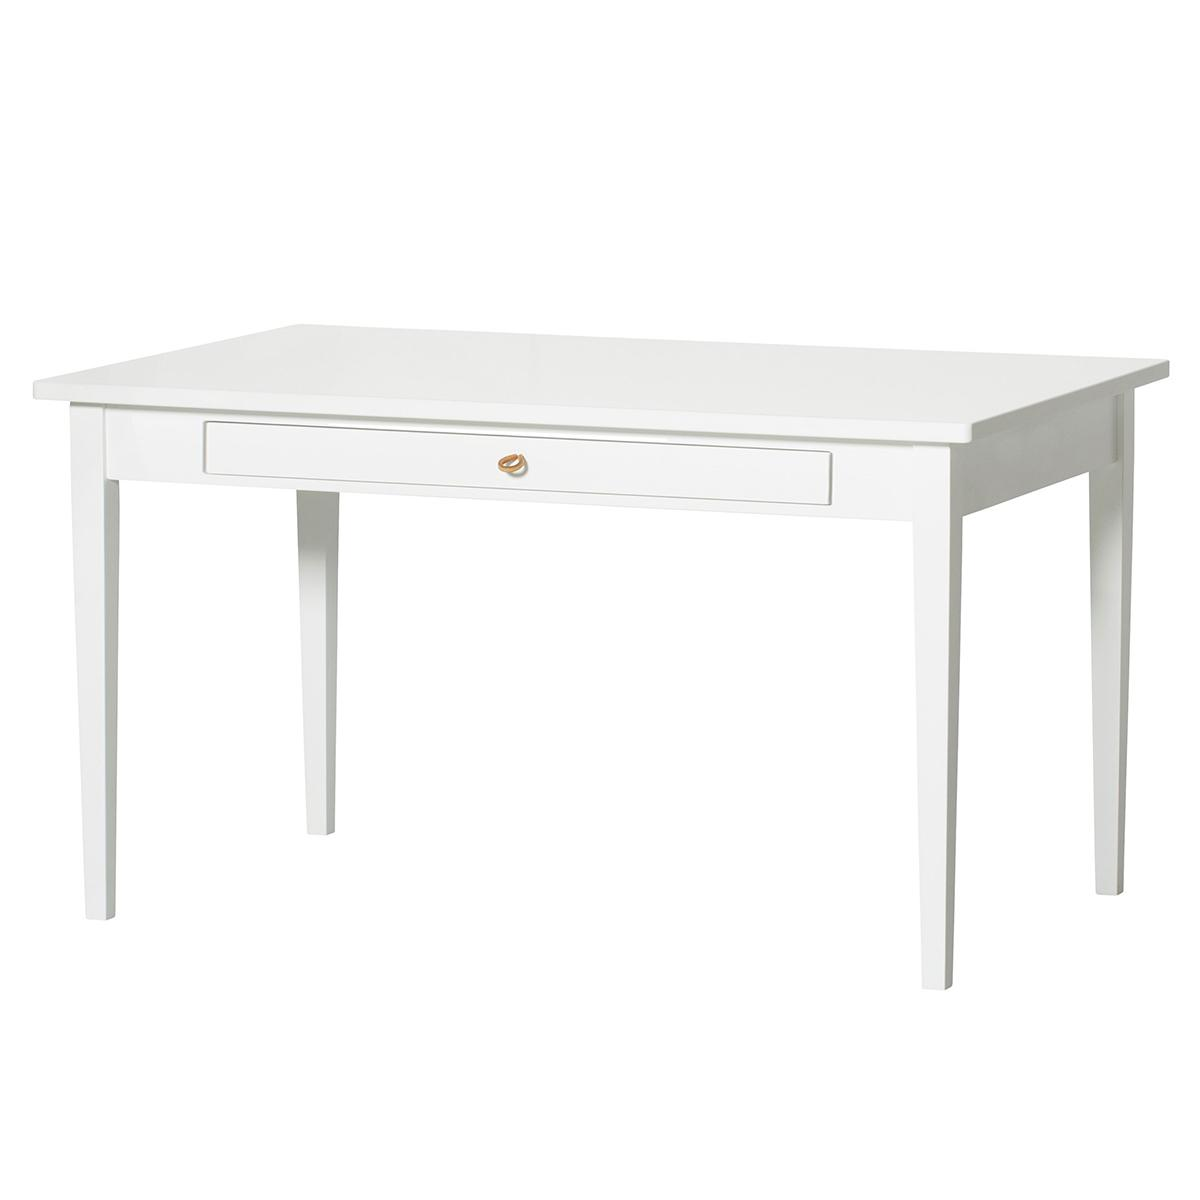 Bureau junior (poignées cuir) SEASIDE Oliver Furniture blanc